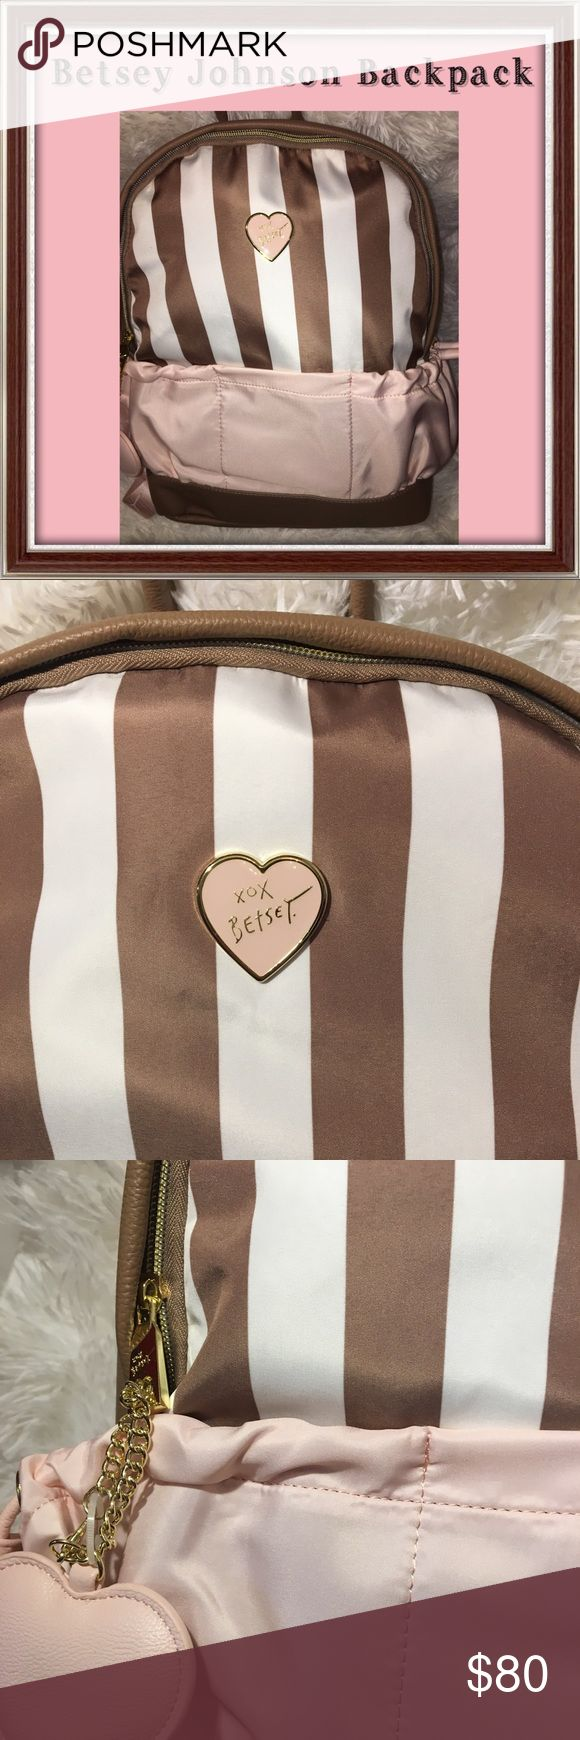 Betsey Johnson peach Tan cream backpack Absolutely unique and gorgeous Betsey Johnson 2-in-1 backpack. Has tan and white stripes with pink pockets on the outside. Outside pockets can be opened or closed. Has heart keychain. Body 100% polyester, trim 100% polyurethane. Lining 100% polyester. Can be carried by hand or on back! Has heart keychain. MSRP $98. Make an offer. If I accept, I will lower the price so you'll hopefully get discounted shipping! See my closet for lots of other Betsey…